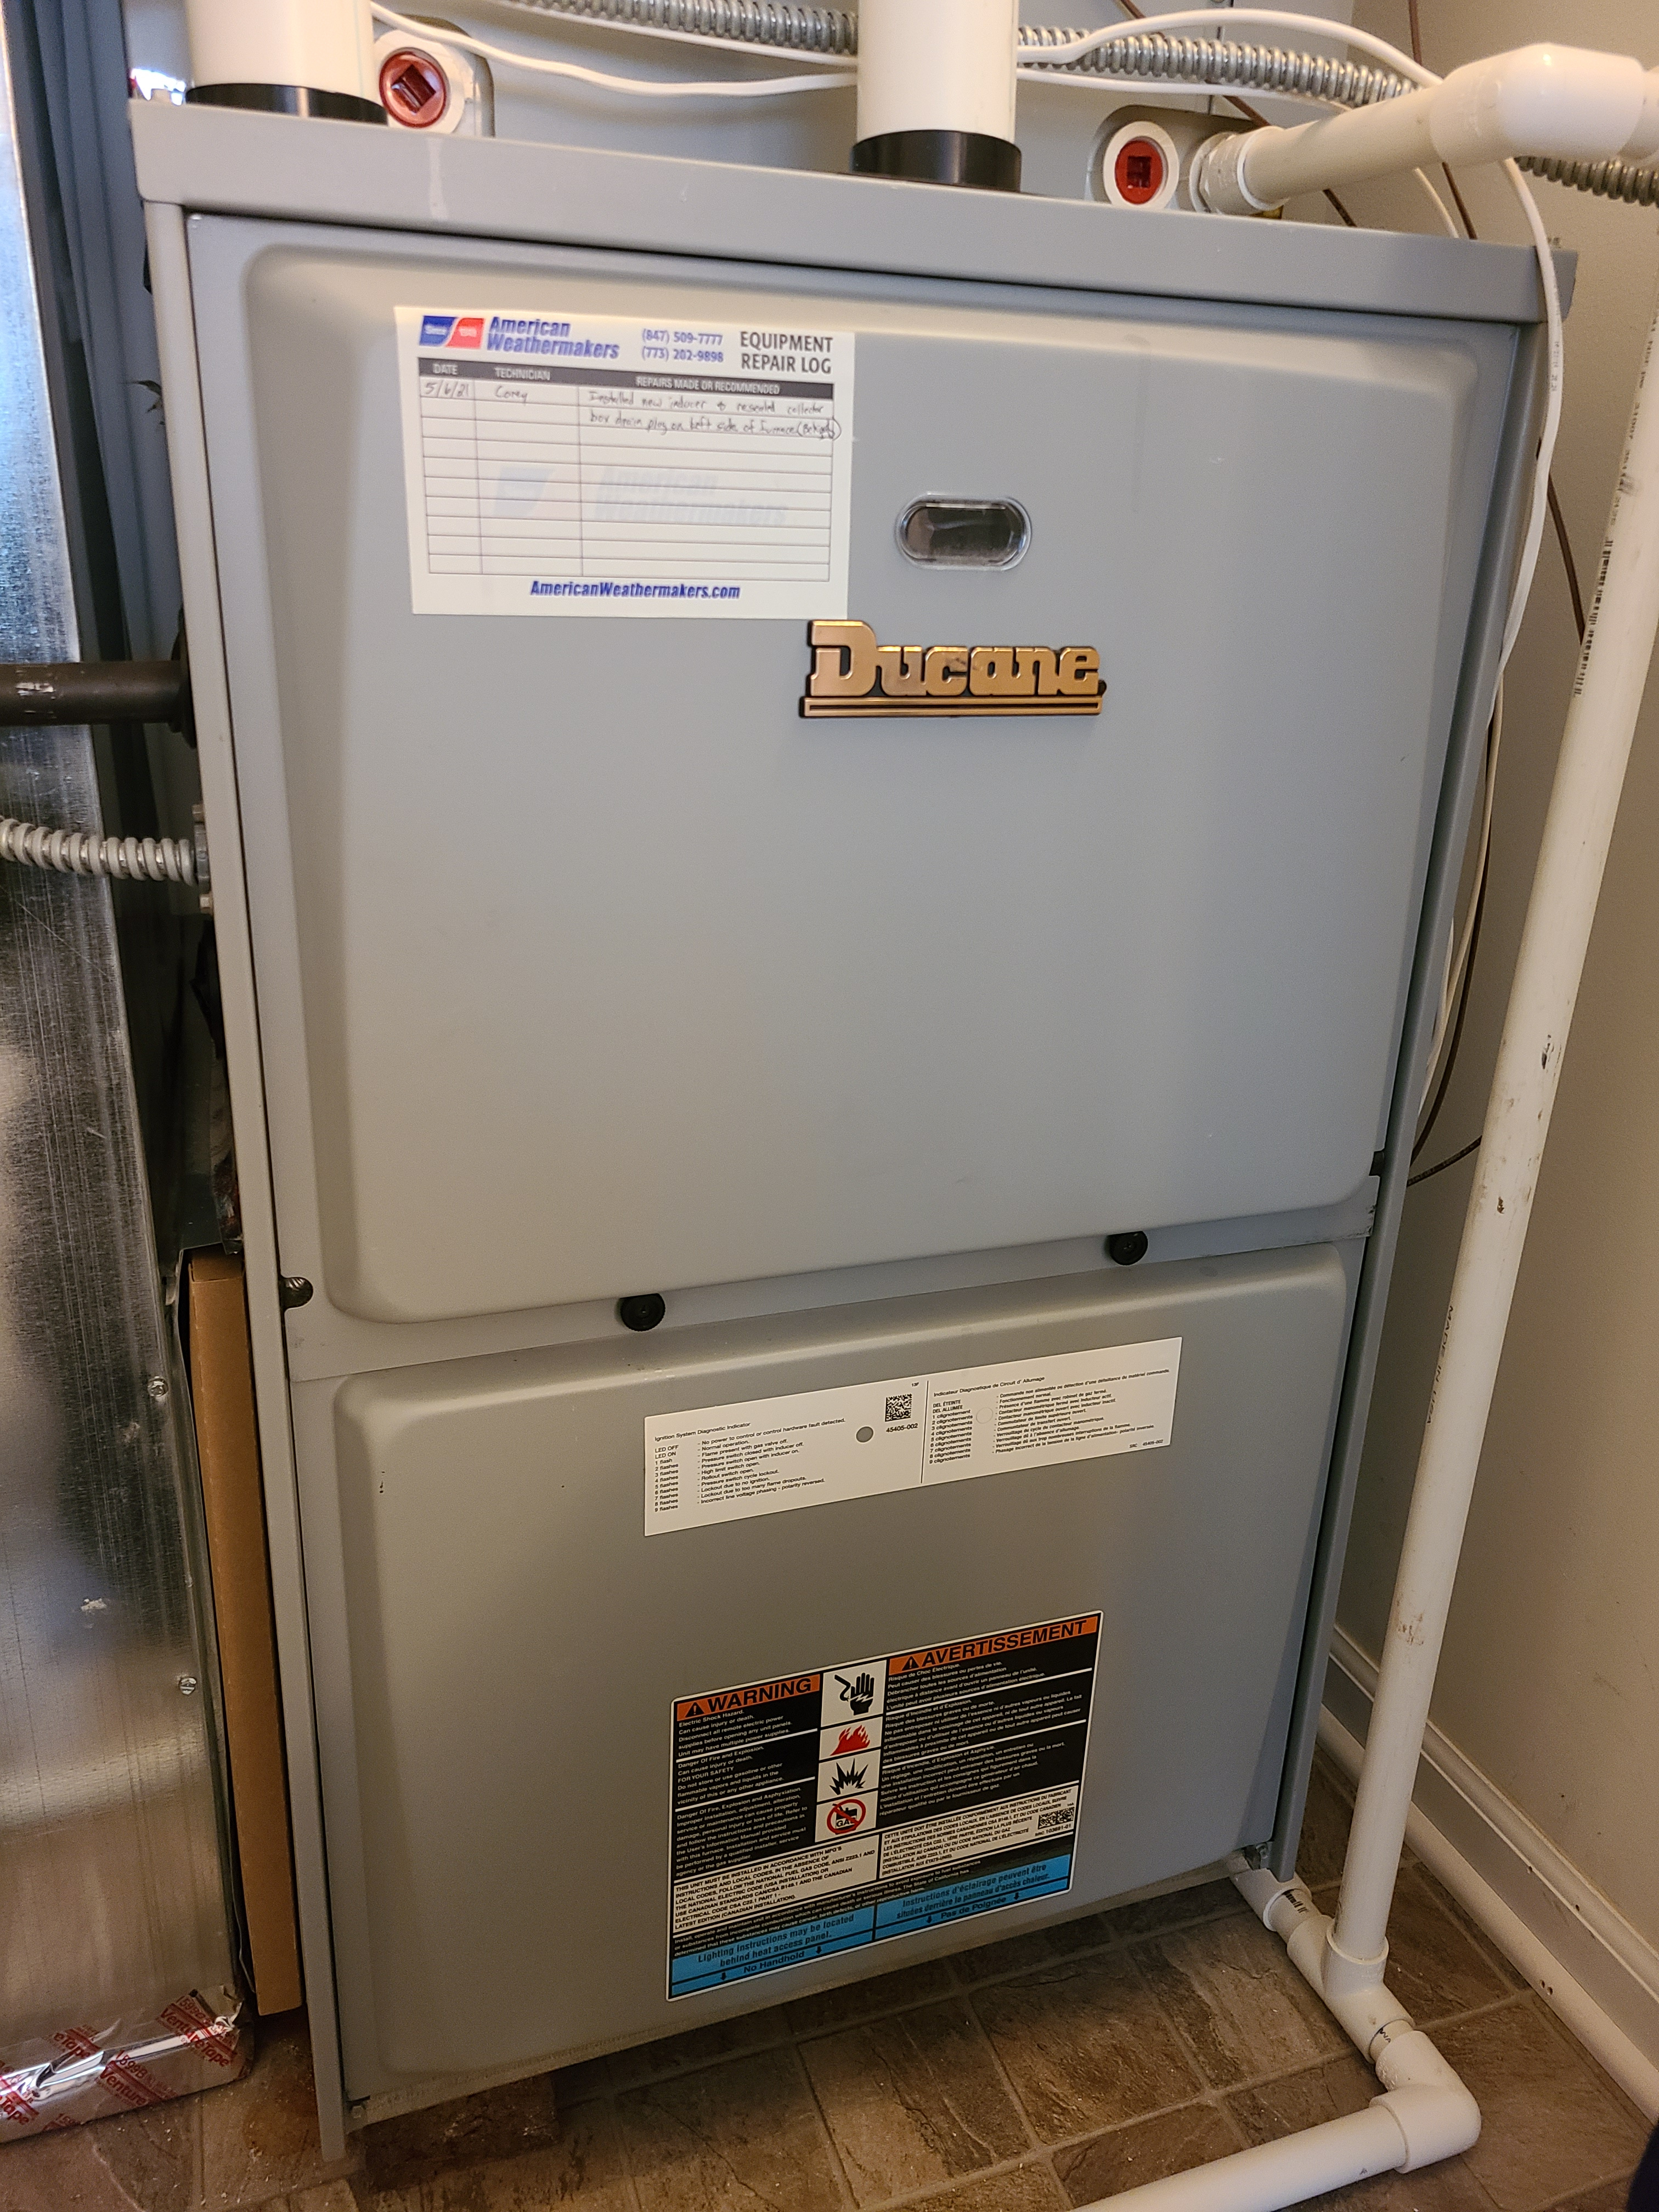 Ducane furnace no heat issue fixed and system running great at this time.